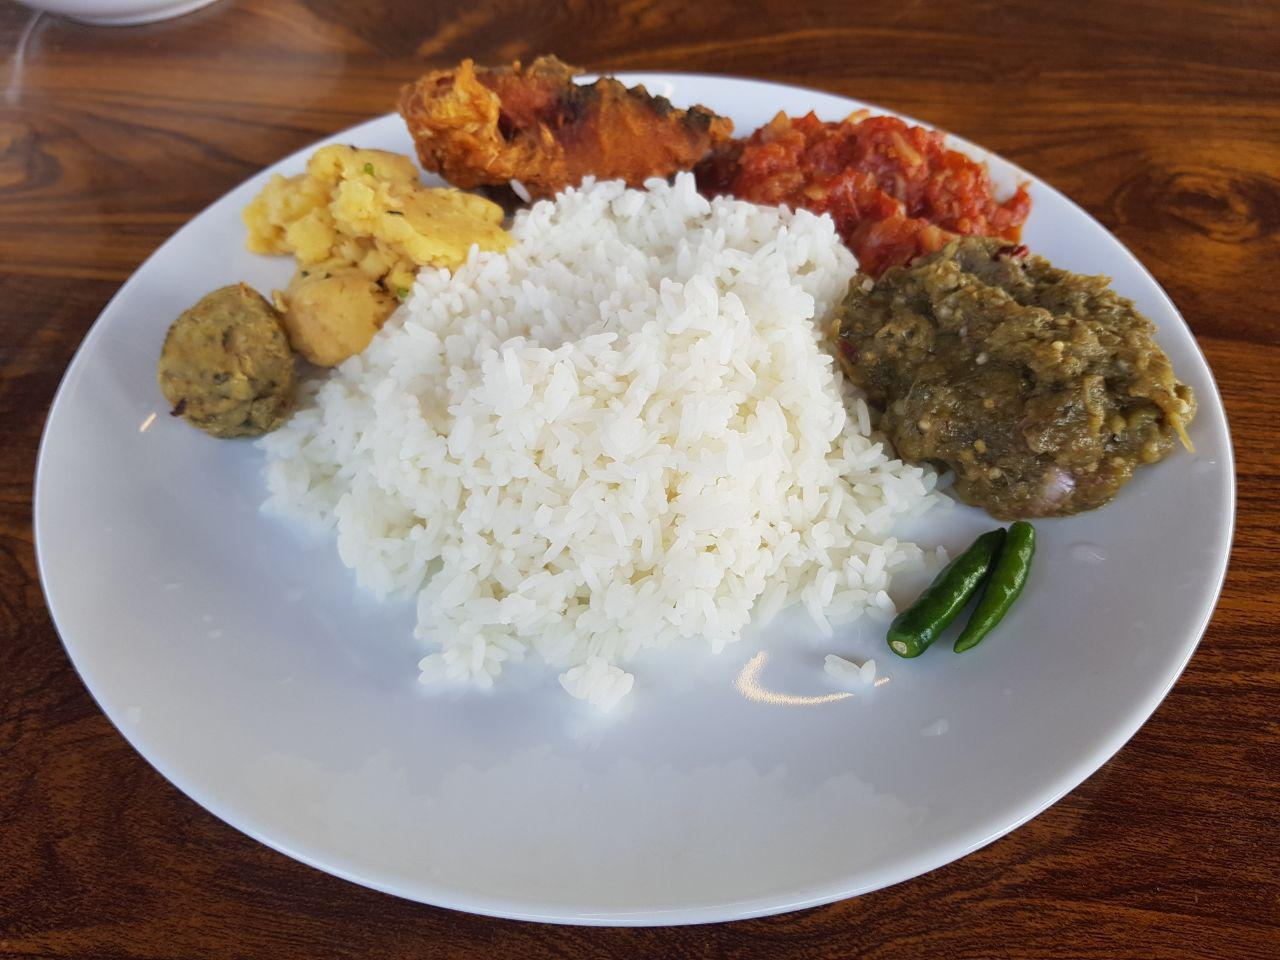 the lunch especially for first day of new year Bengali